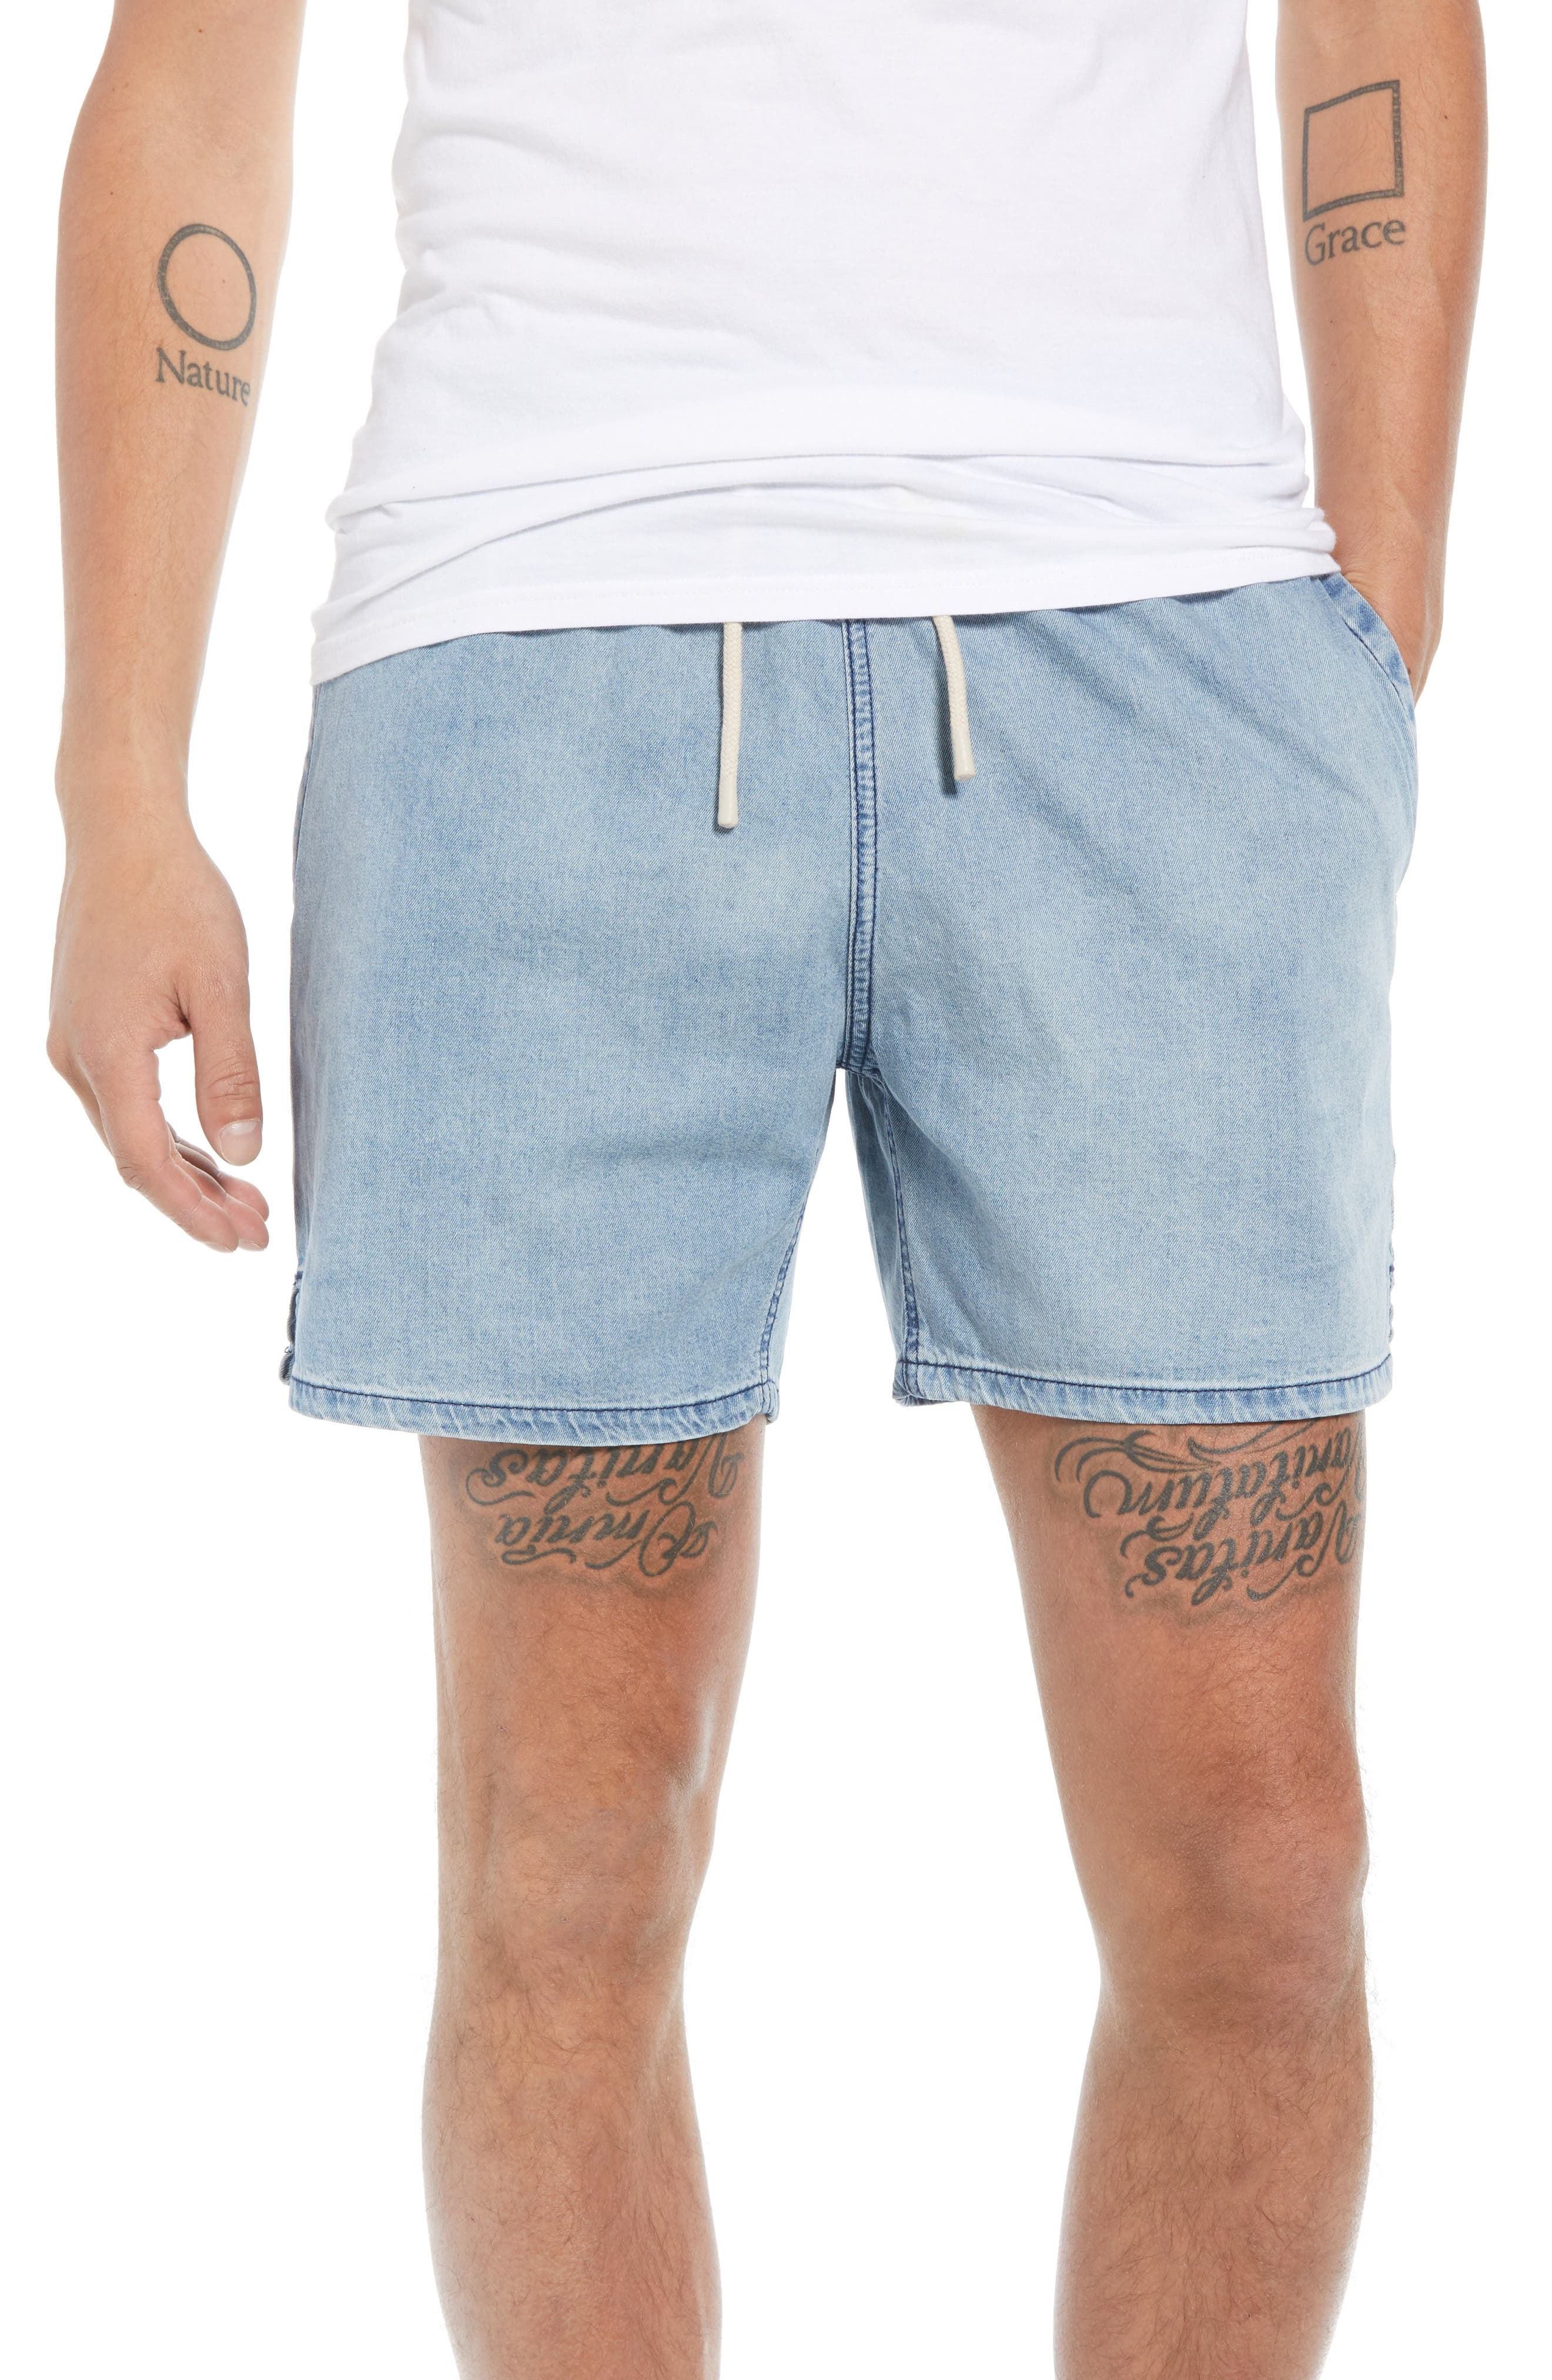 Zephyr Shorts,                         Main,                         color, ARTIC WASH